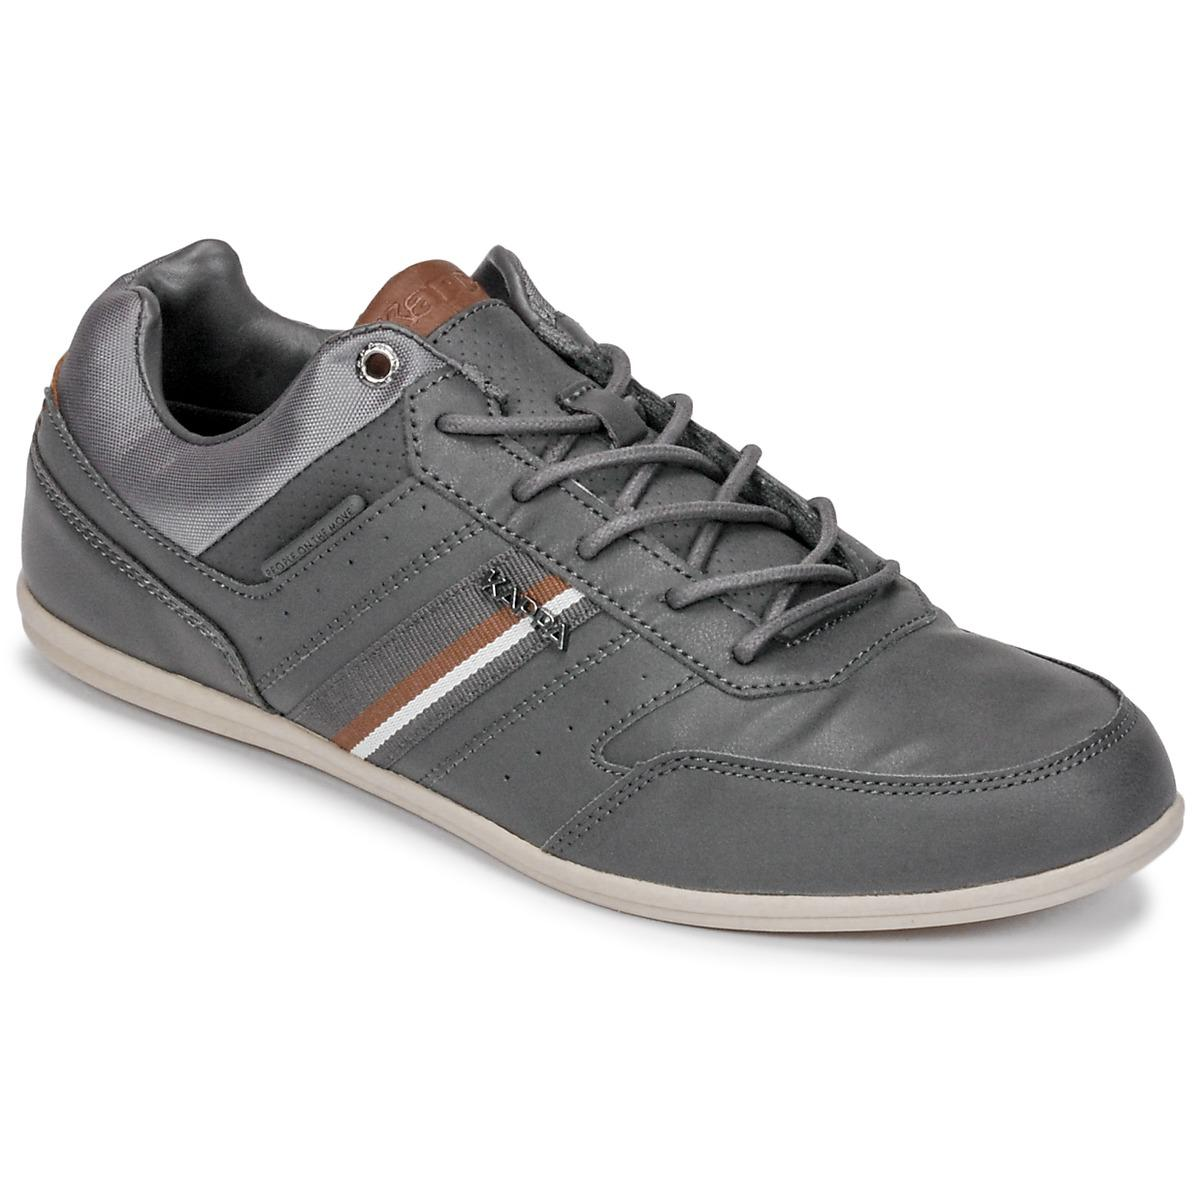 huge selection of 3b396 83799 kappa-grey-Whoole-Mens-Shoes-trainers-In-Grey.jpeg